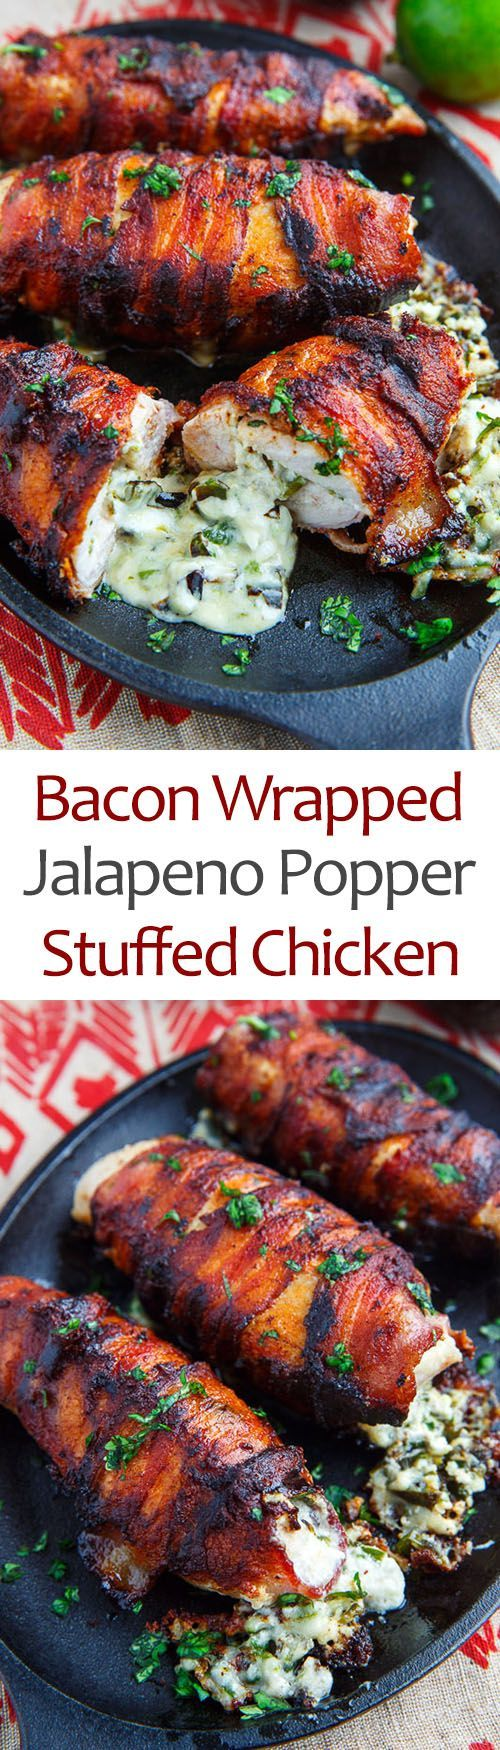 Bacon Wrapped Jalapeno Popper Stuffed Chicken - http://doctorforlove.info/bacon-wrapped-jalapeno-popper-stuffed-chicken